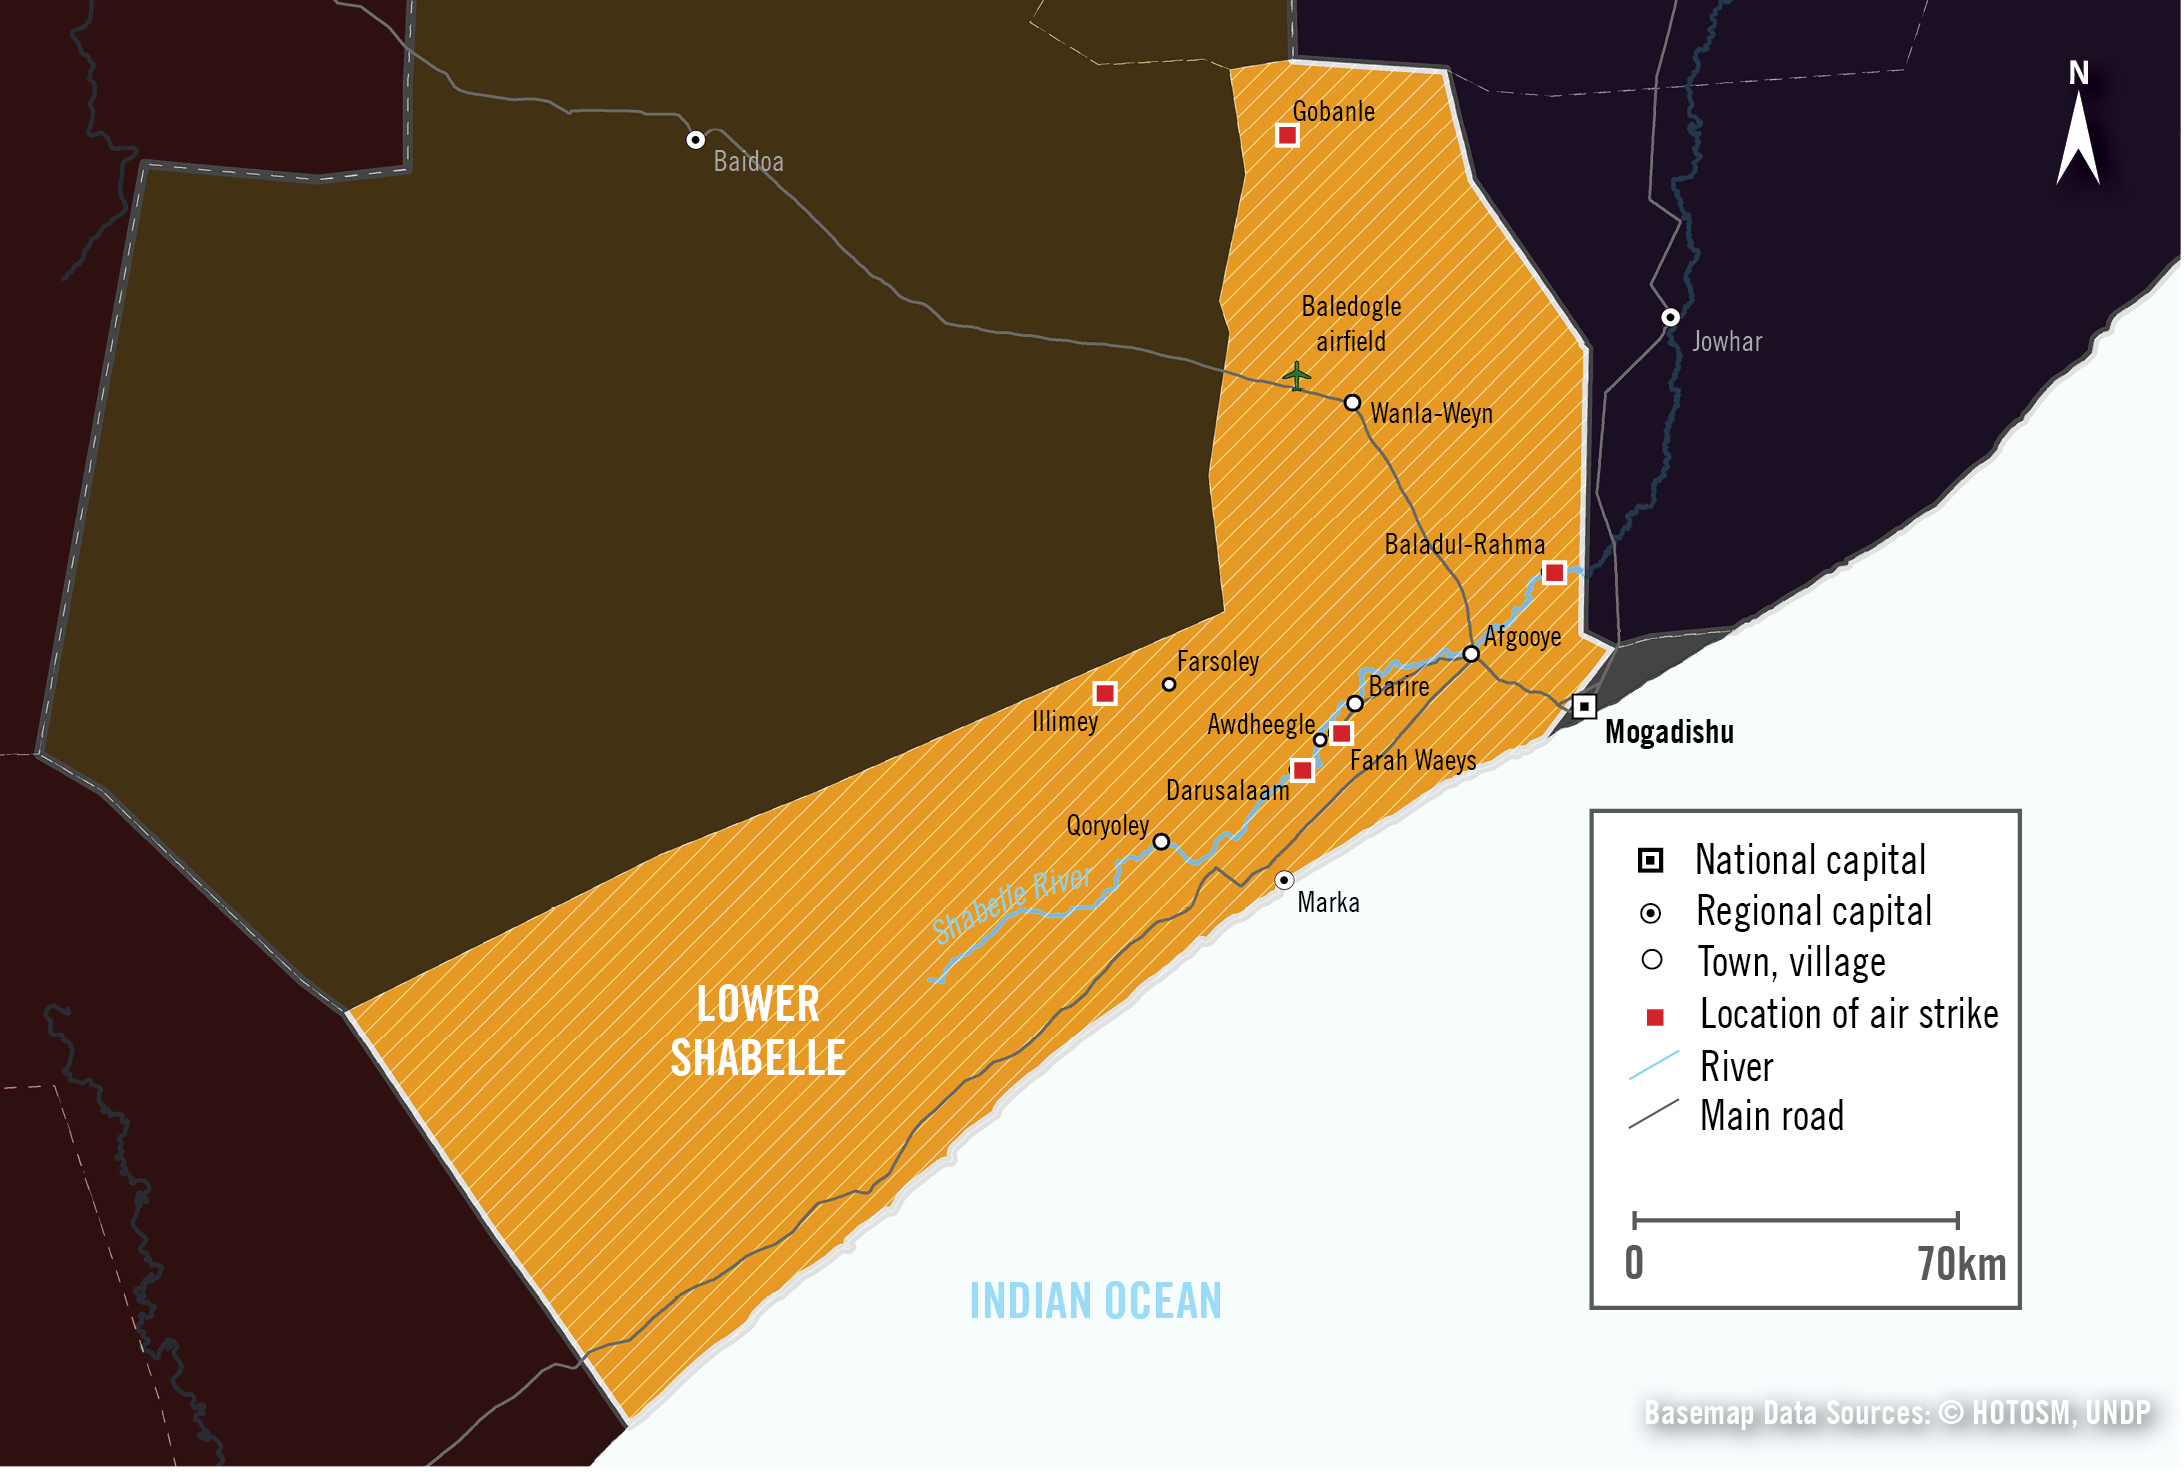 Map of Lower Shabelle, Somalia